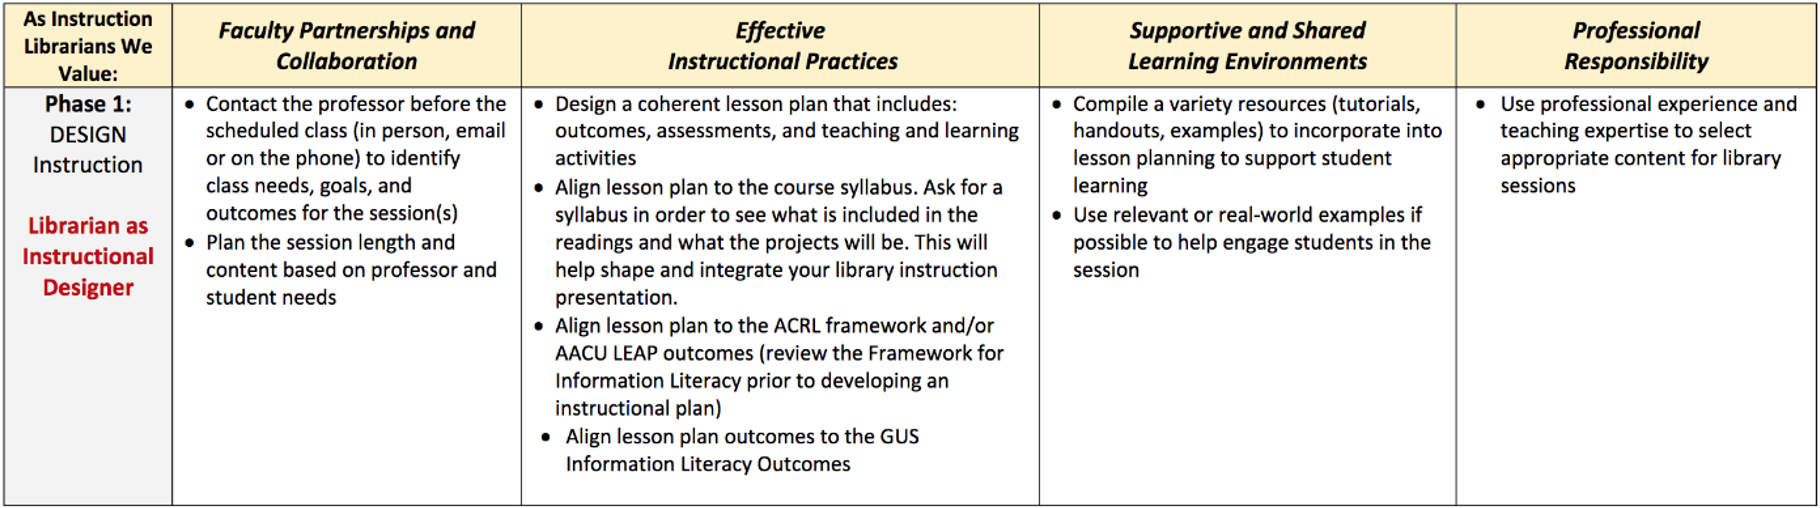 Figure 2. The Teaching Guidelines, Phase 1: Design